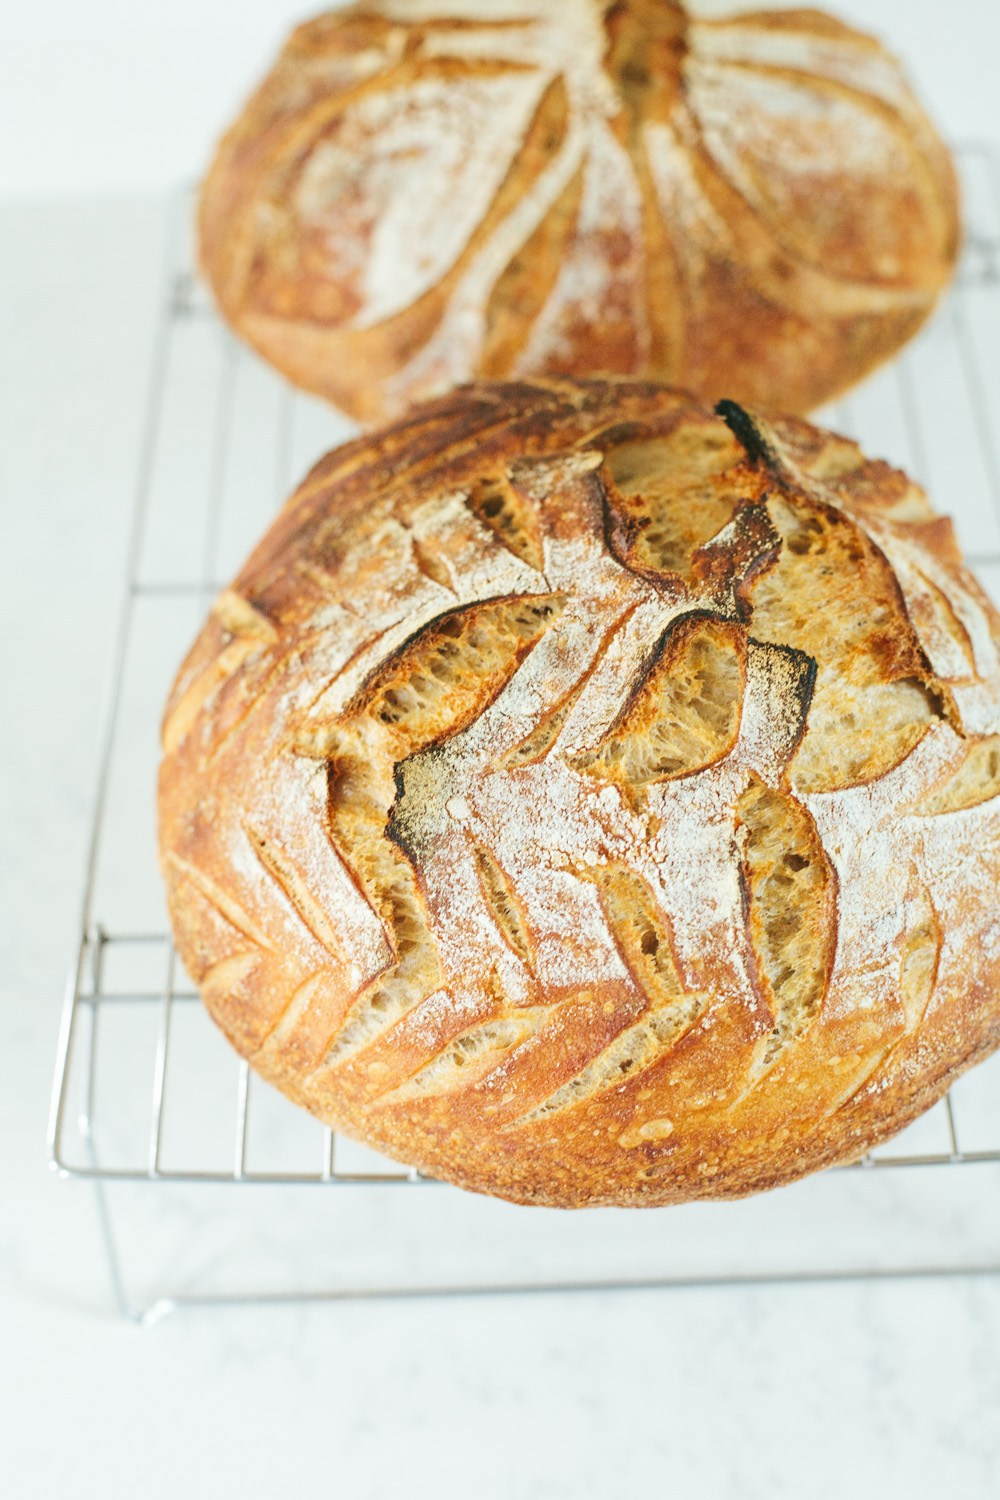 naturally leavened sourdough bread recipe